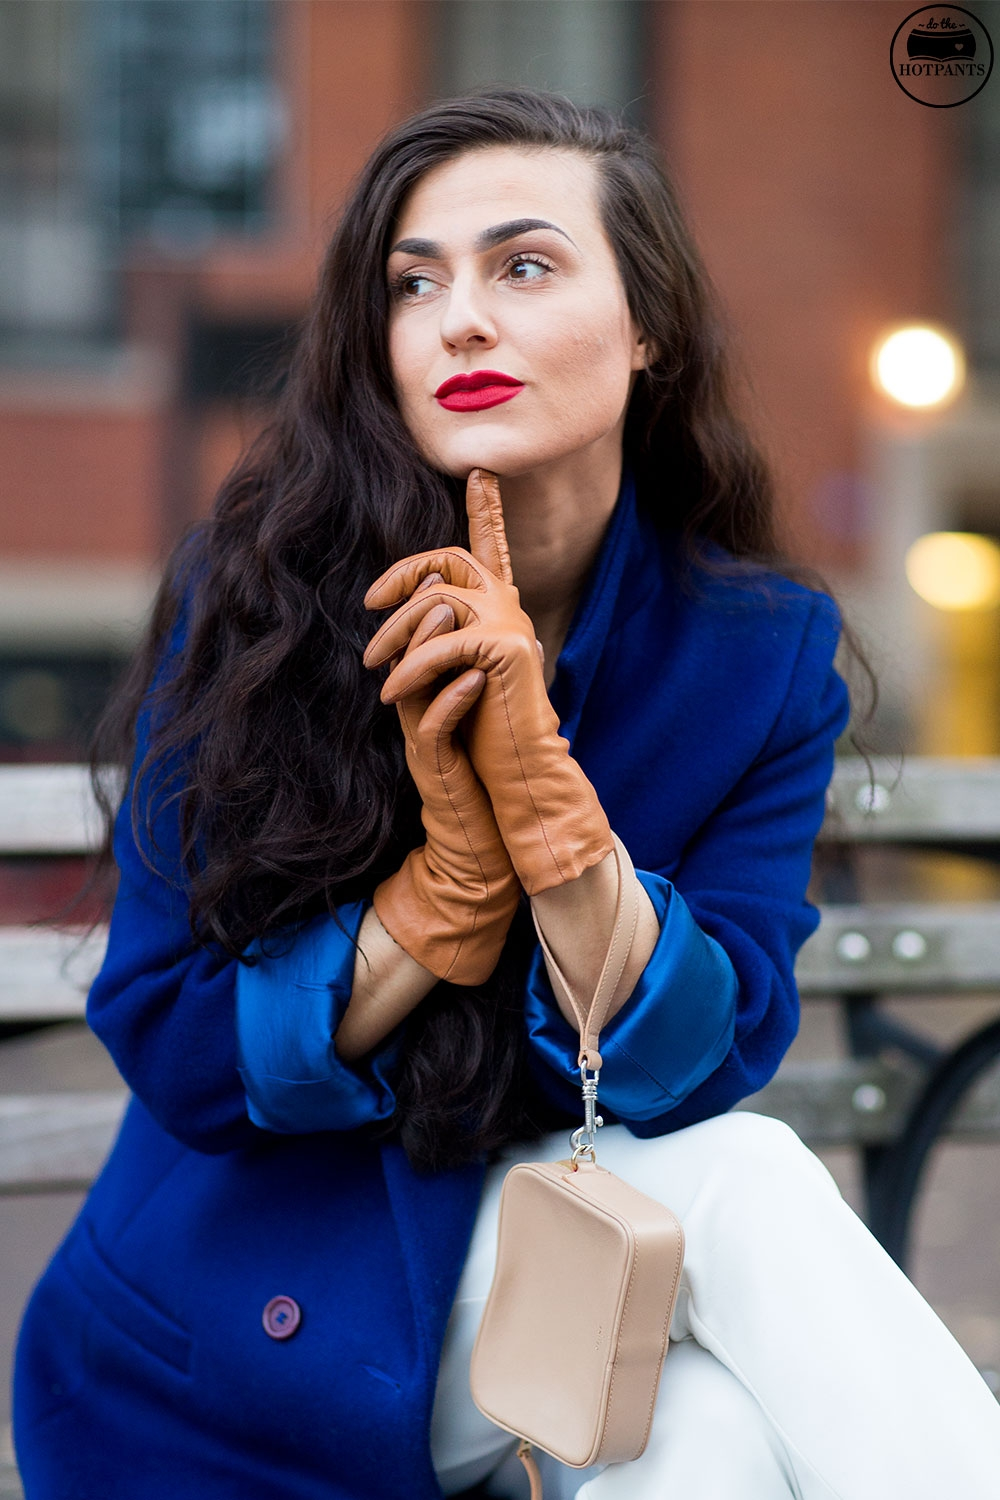 Do The Hotpants Dana Suchow White Jumpsuit Navu Blue Peacoat Trench Coat Jacket Red Lipstick Long Hair Woman MJJ_9817